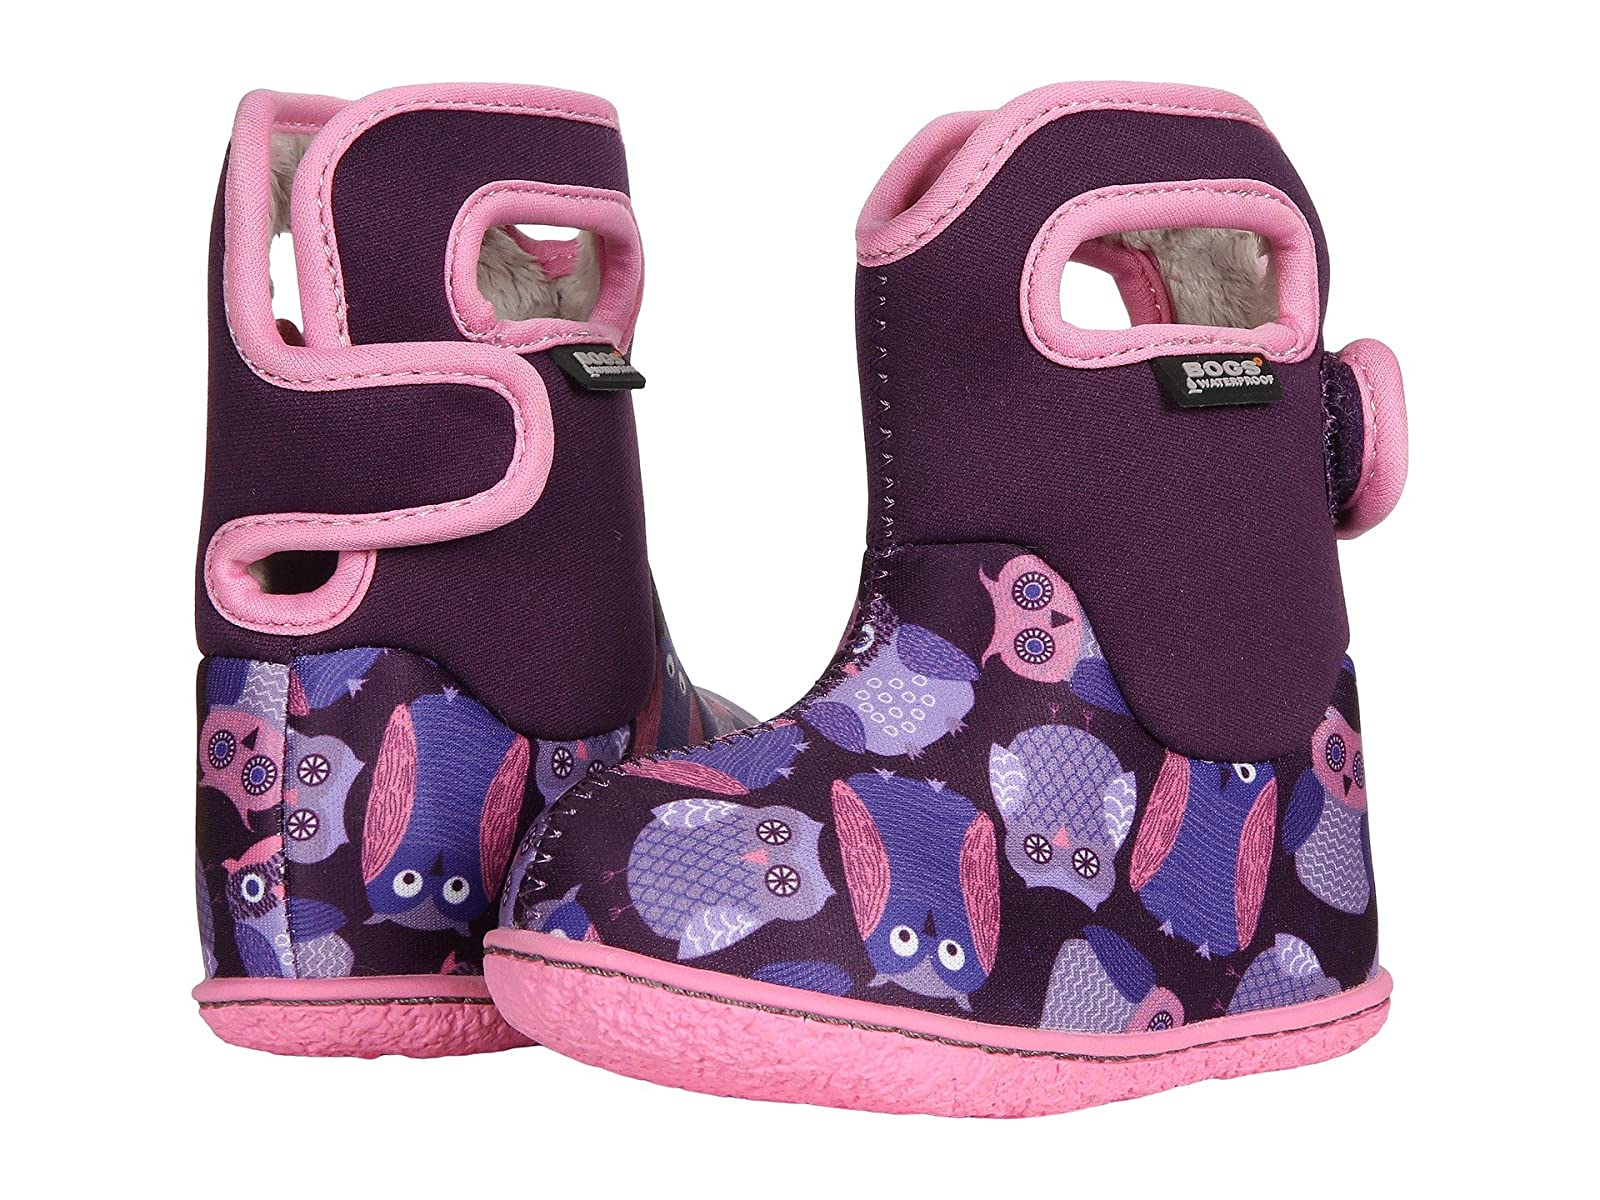 Bogs Kids Baby Bogs Owls (Toddler)Selling fashionable and eye-catching shoes